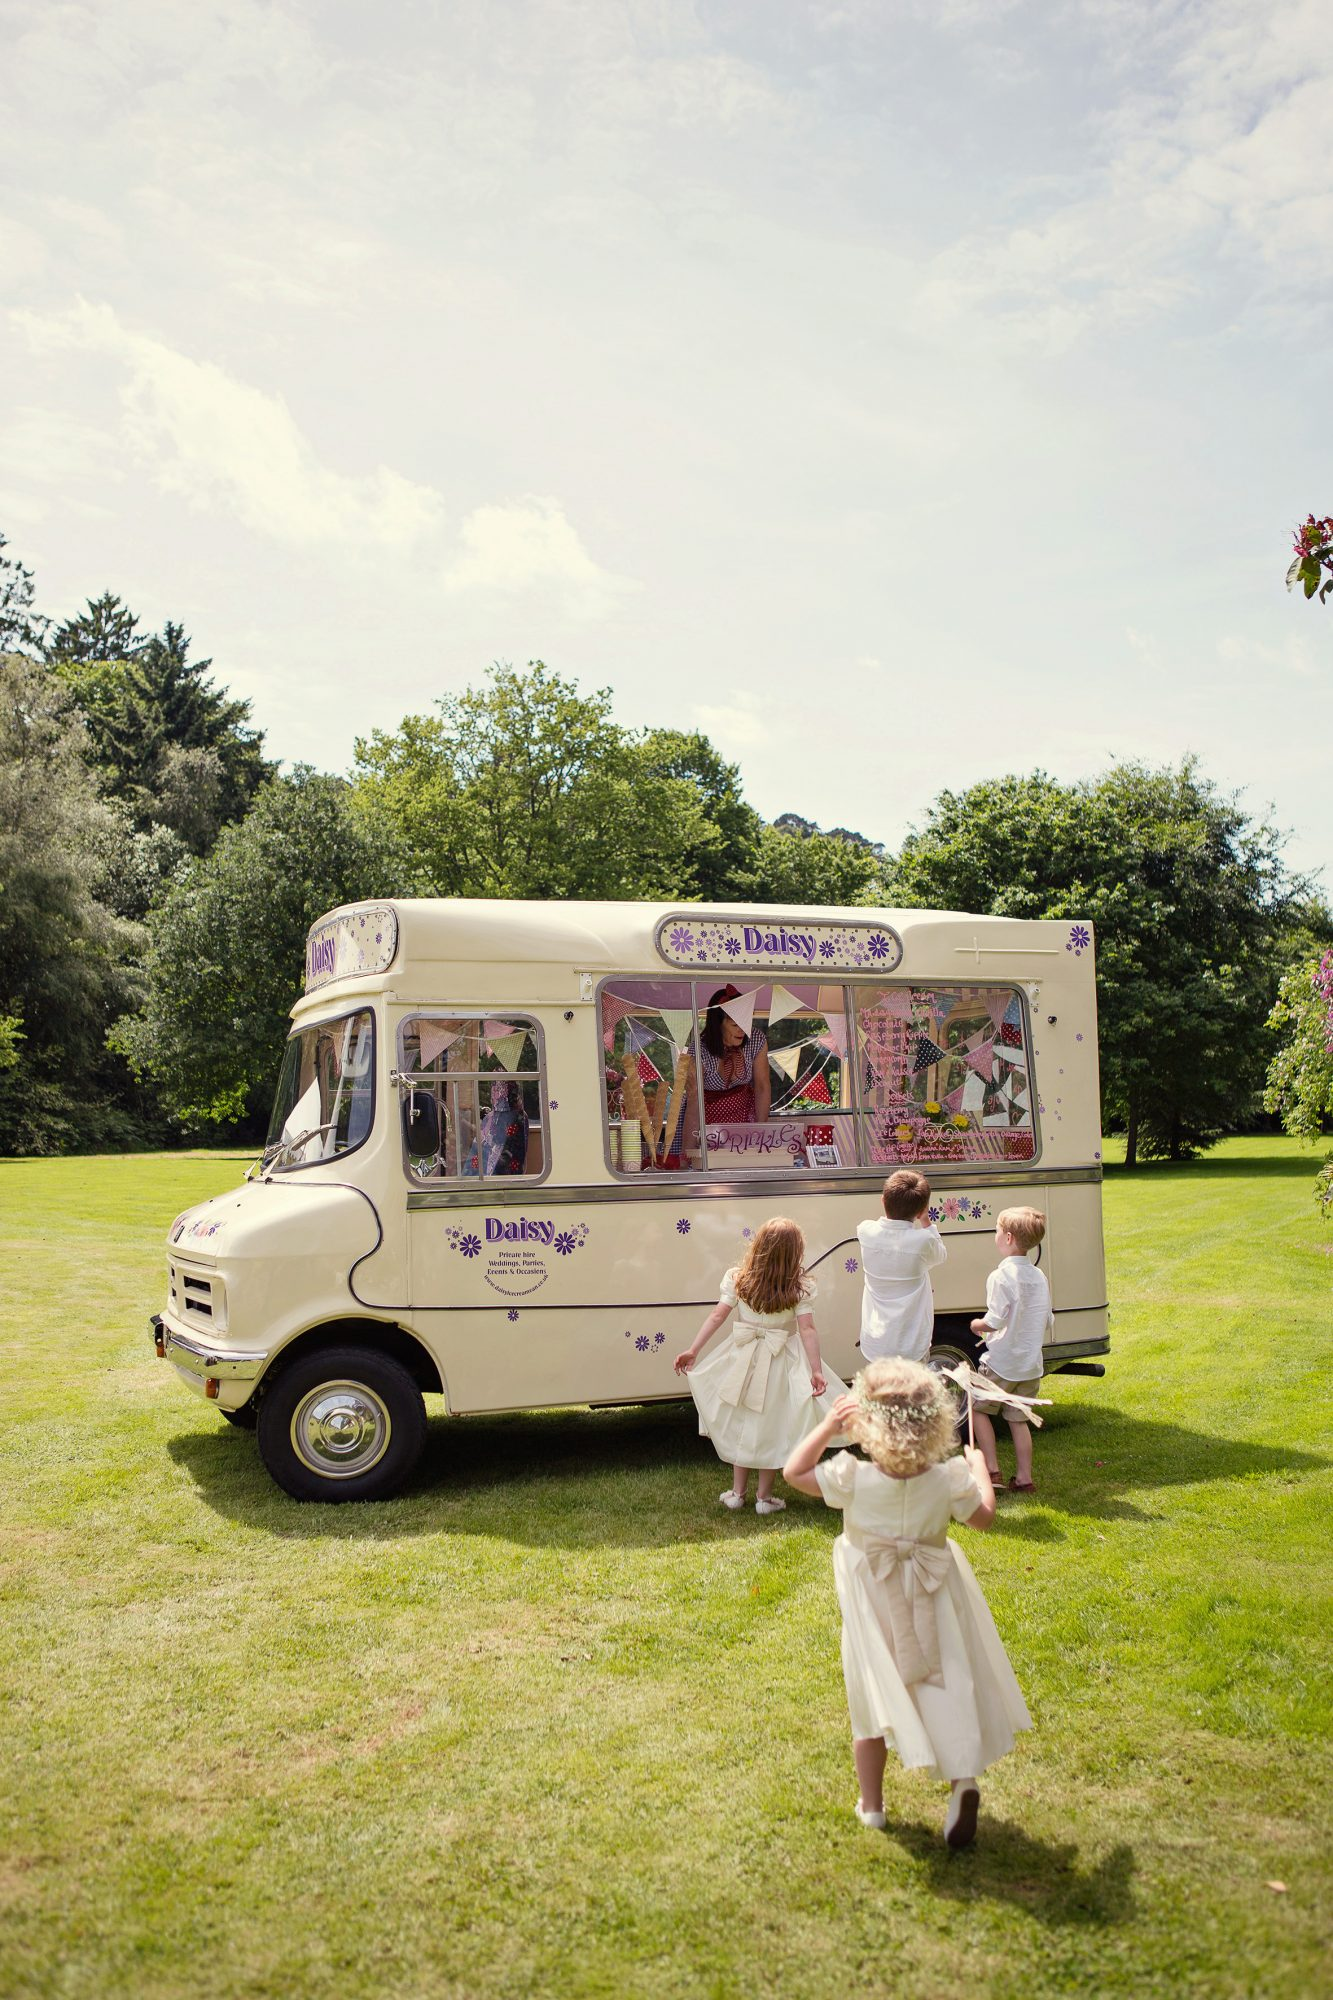 daisy vintage ice cream mobile food truck children guests